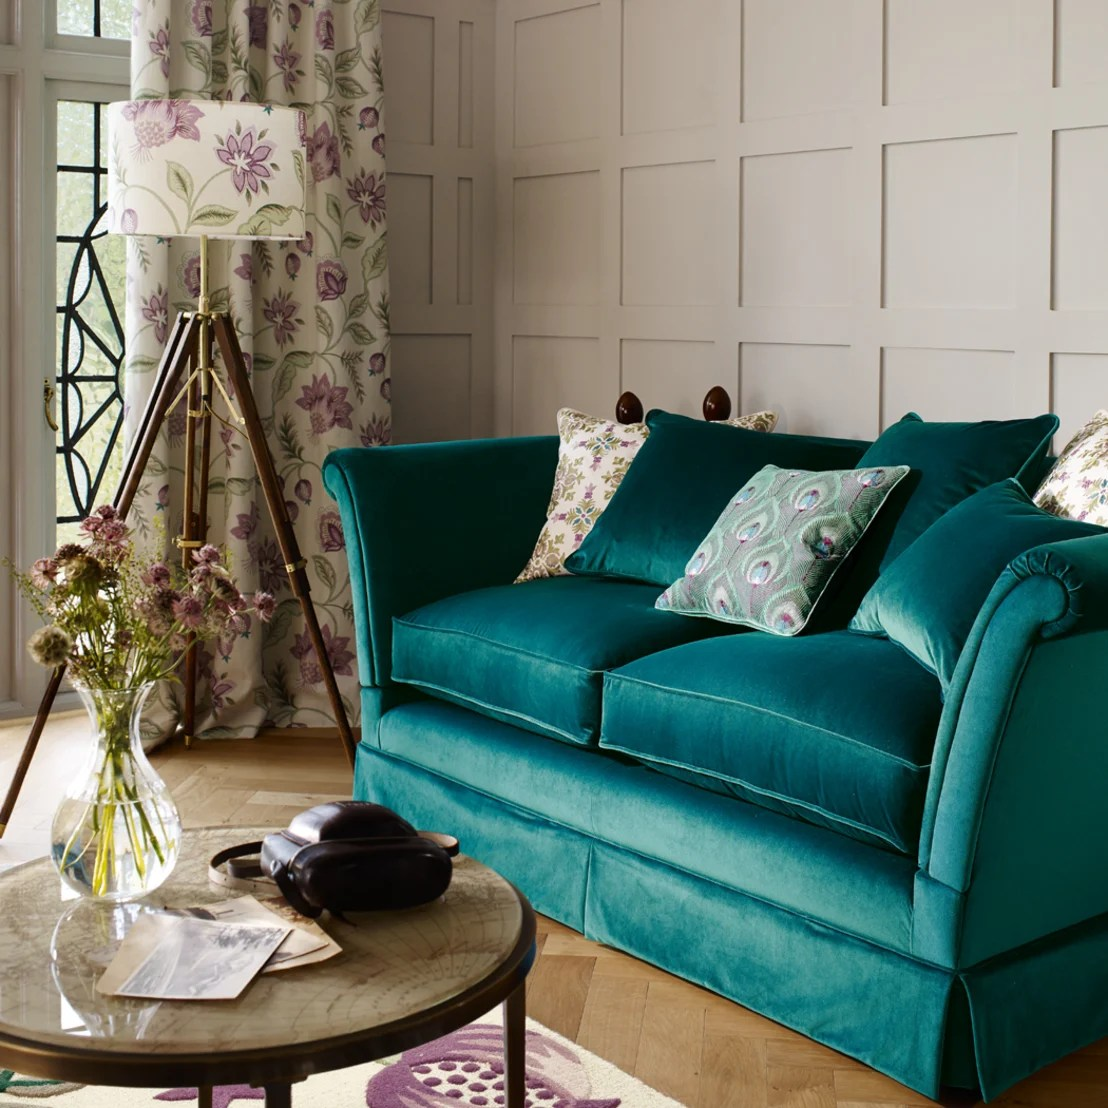 Laura Ashley Muebles Laura Ashley Decoración Tienda On Line En España Y Portugal Homify